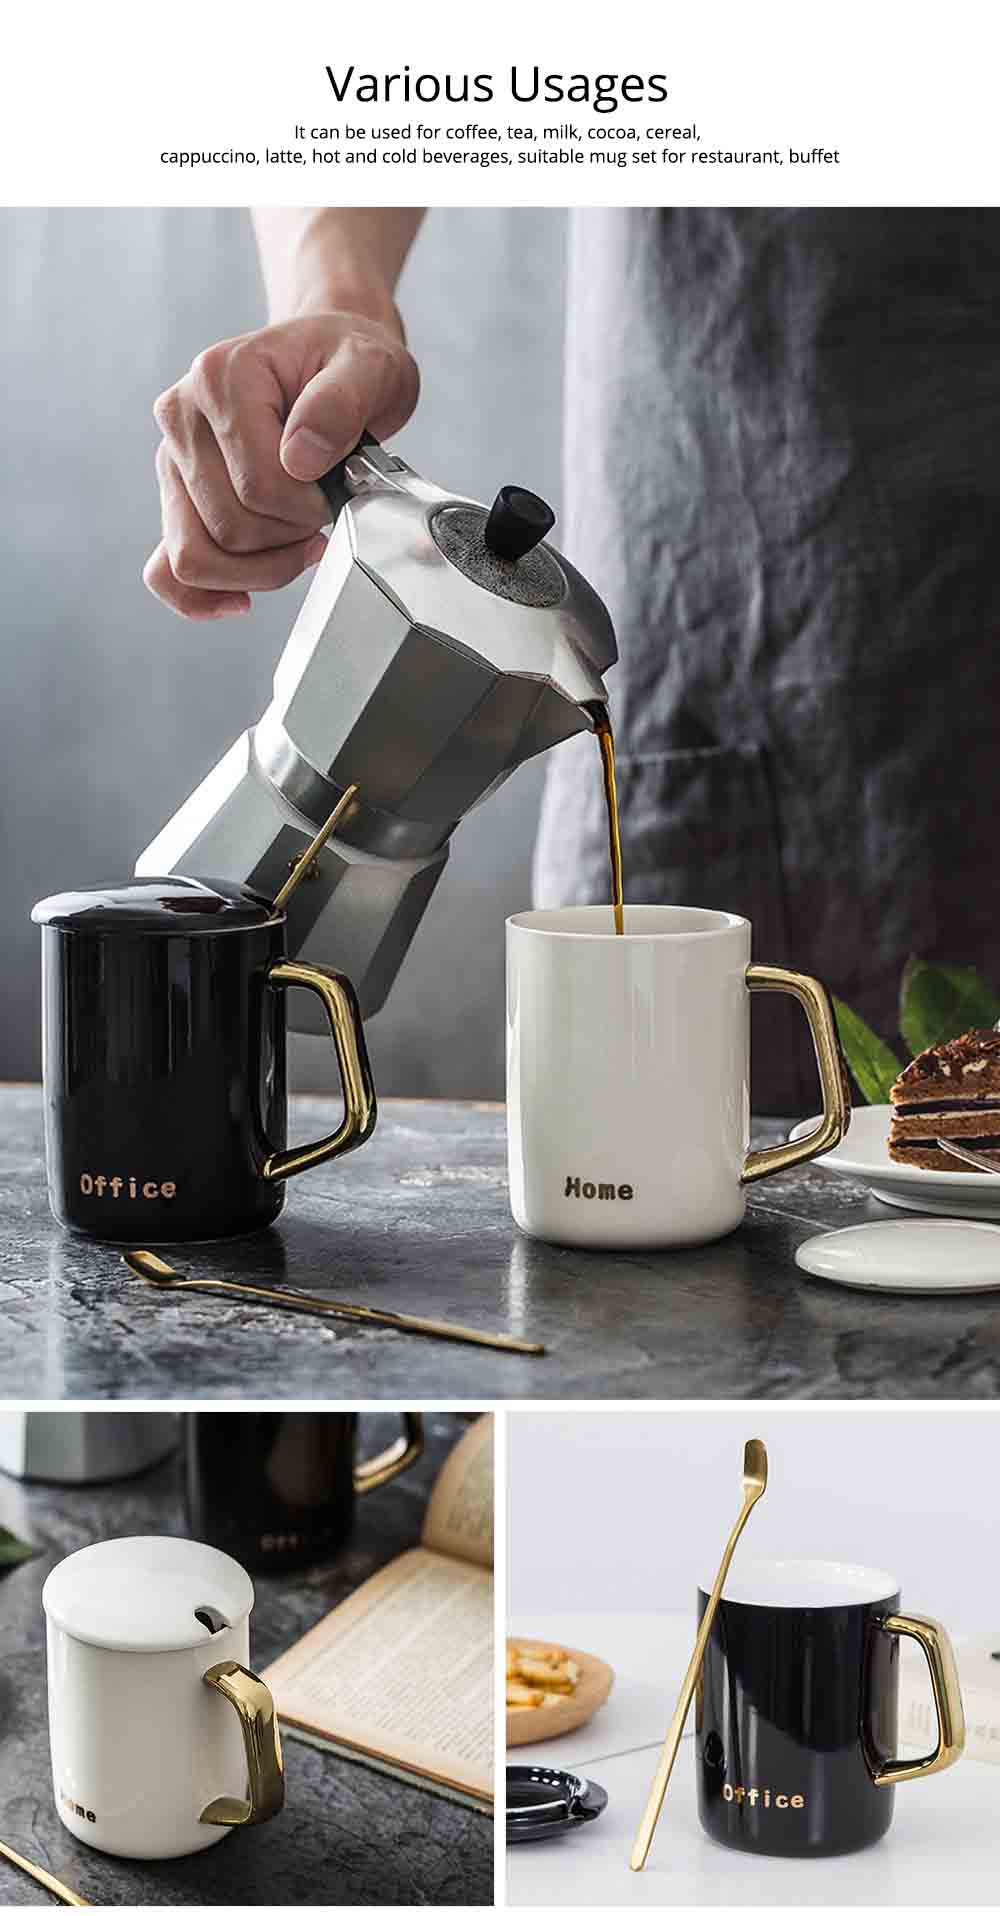 Black and White Ceramic Coffee Mug with Gold Plated Handle 9